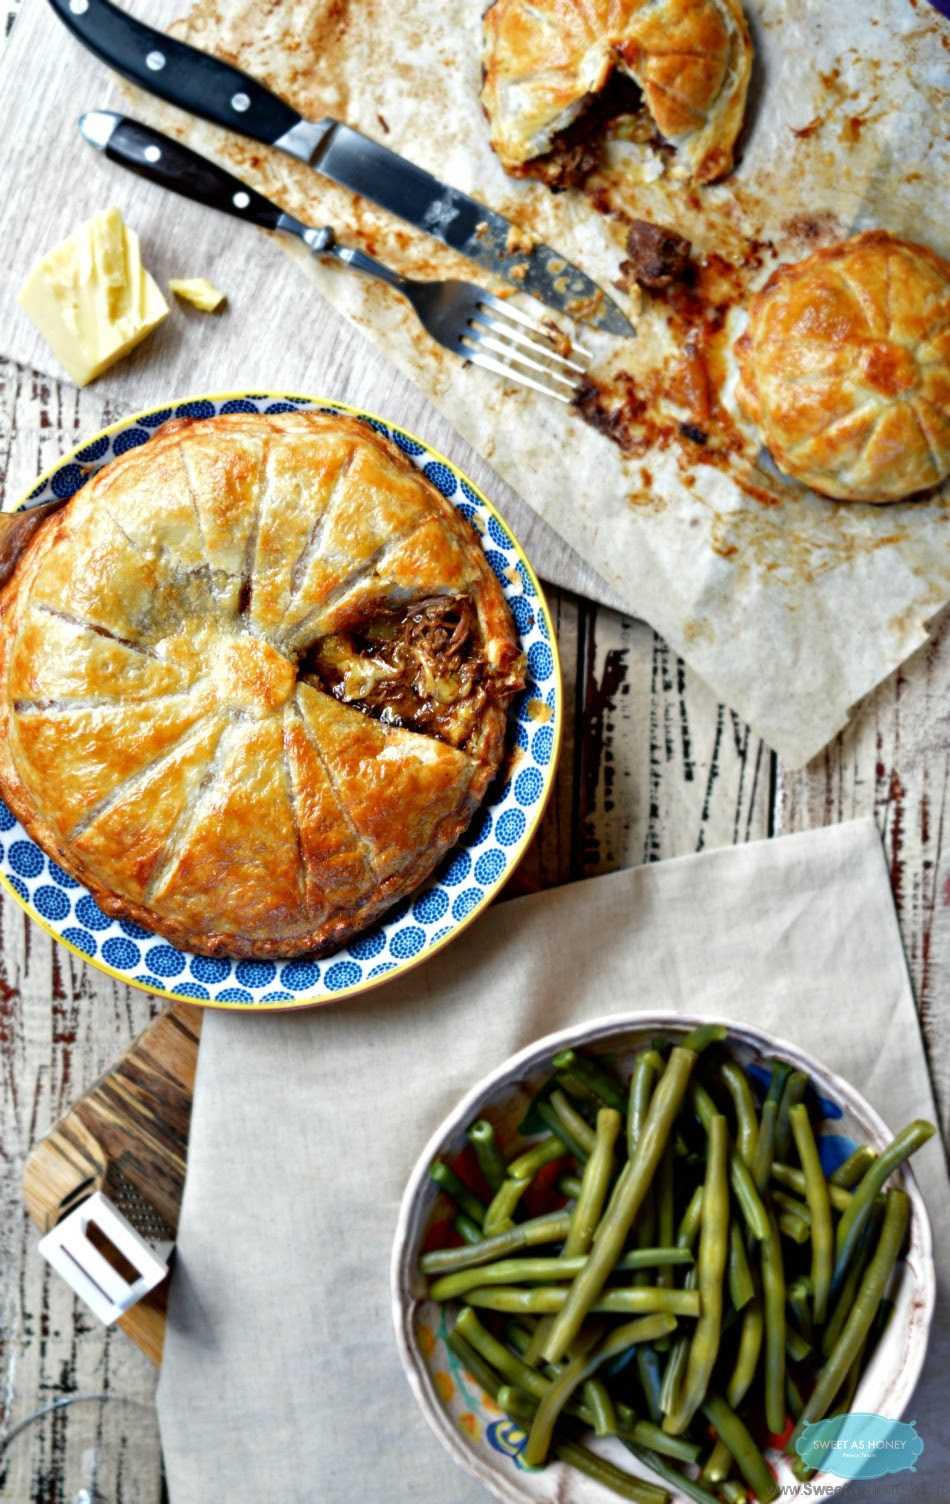 Steak Pie with cheddar|An easy meat pie recipe - SWEETASHONEY